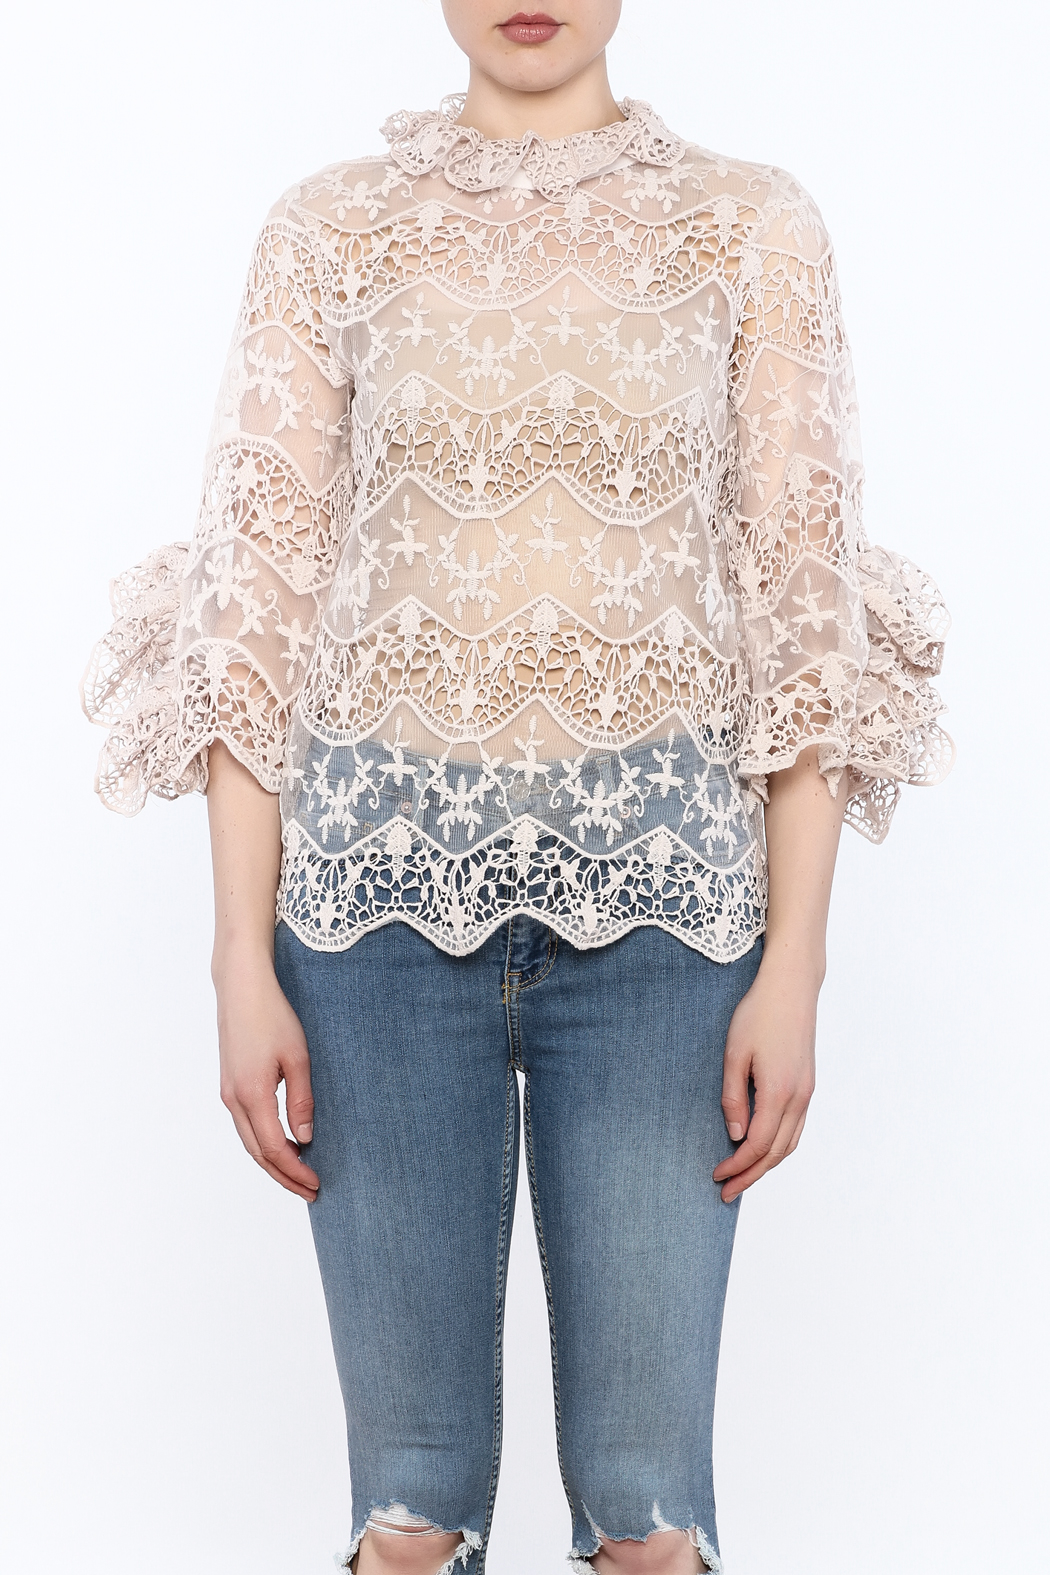 Ina Blush Lace Top - Front Full Image